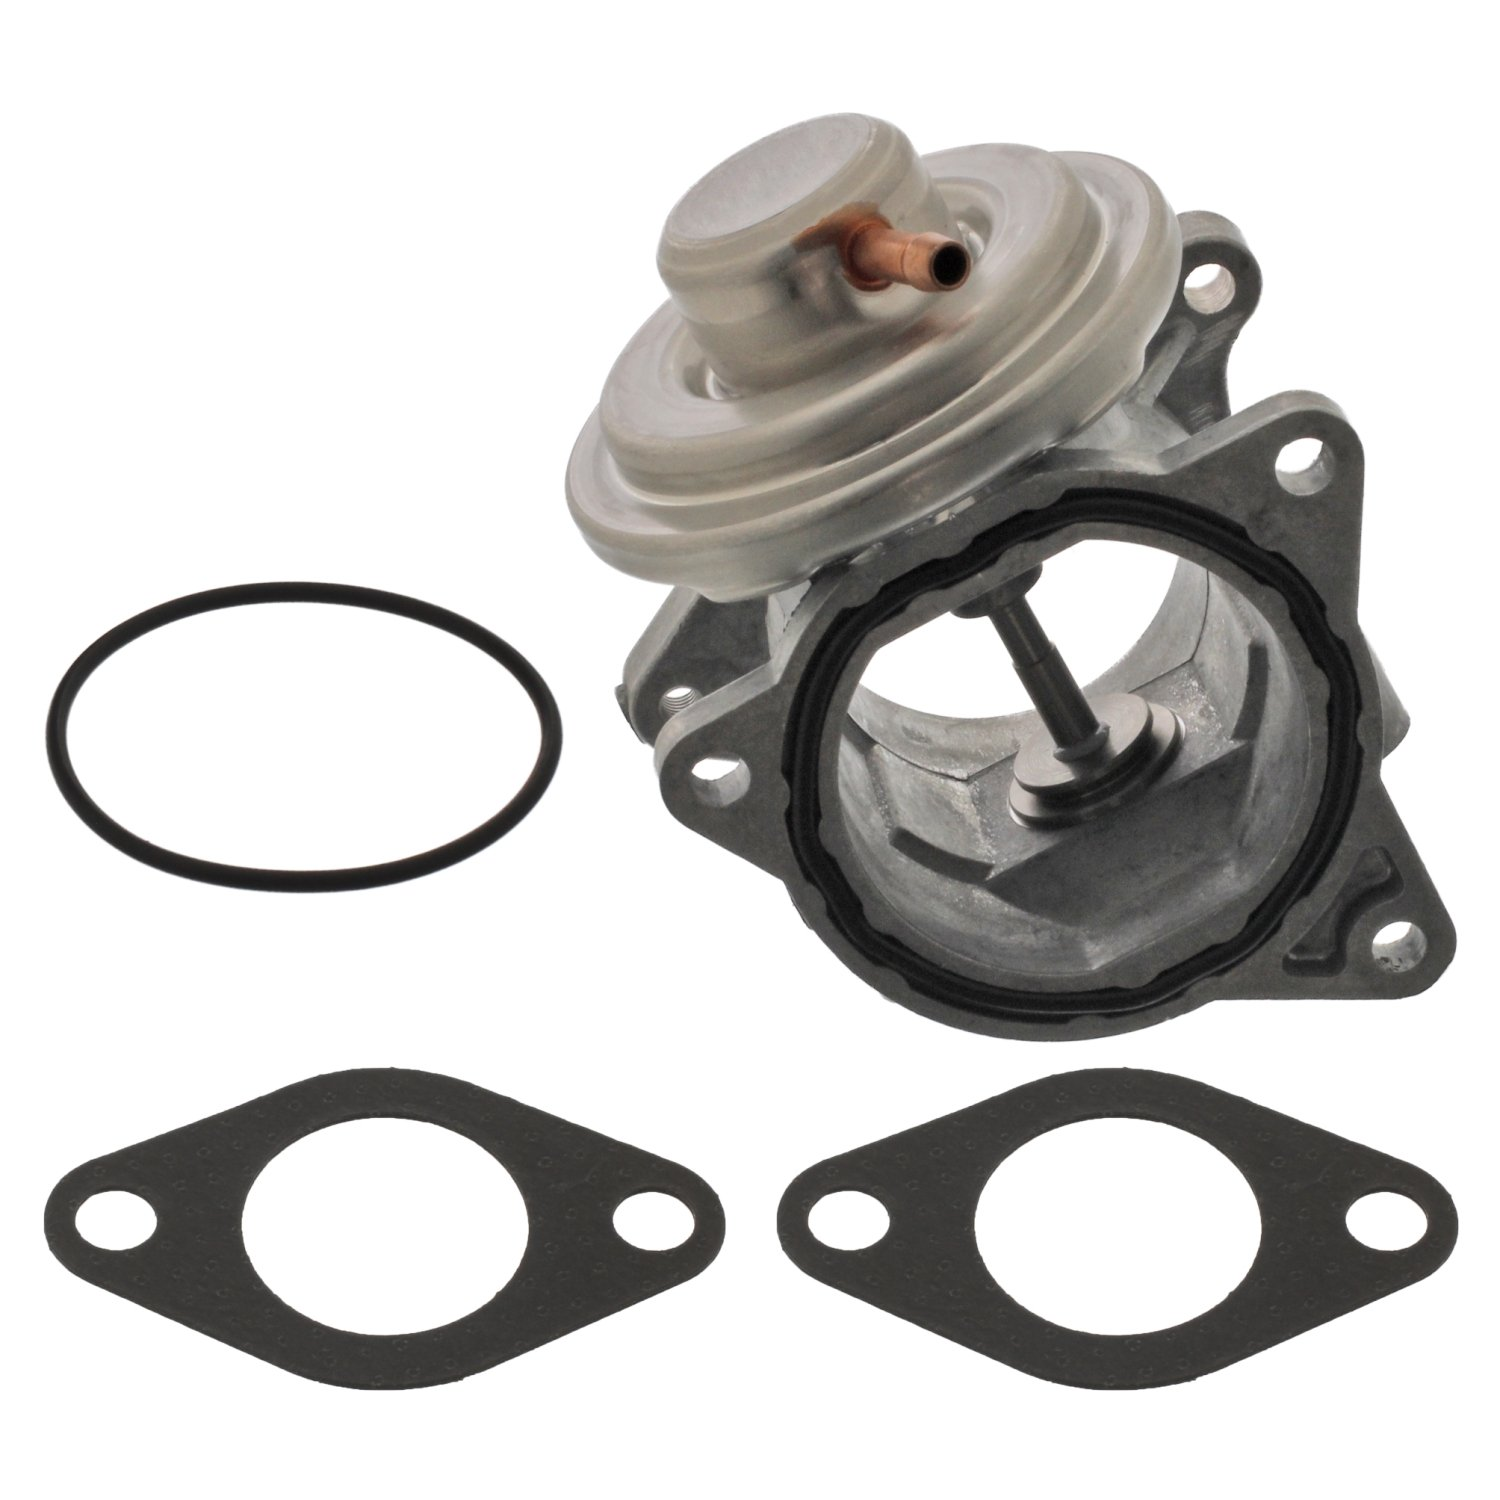 febi bilstein 39713 EGR valve with gaskets - Pack of 1